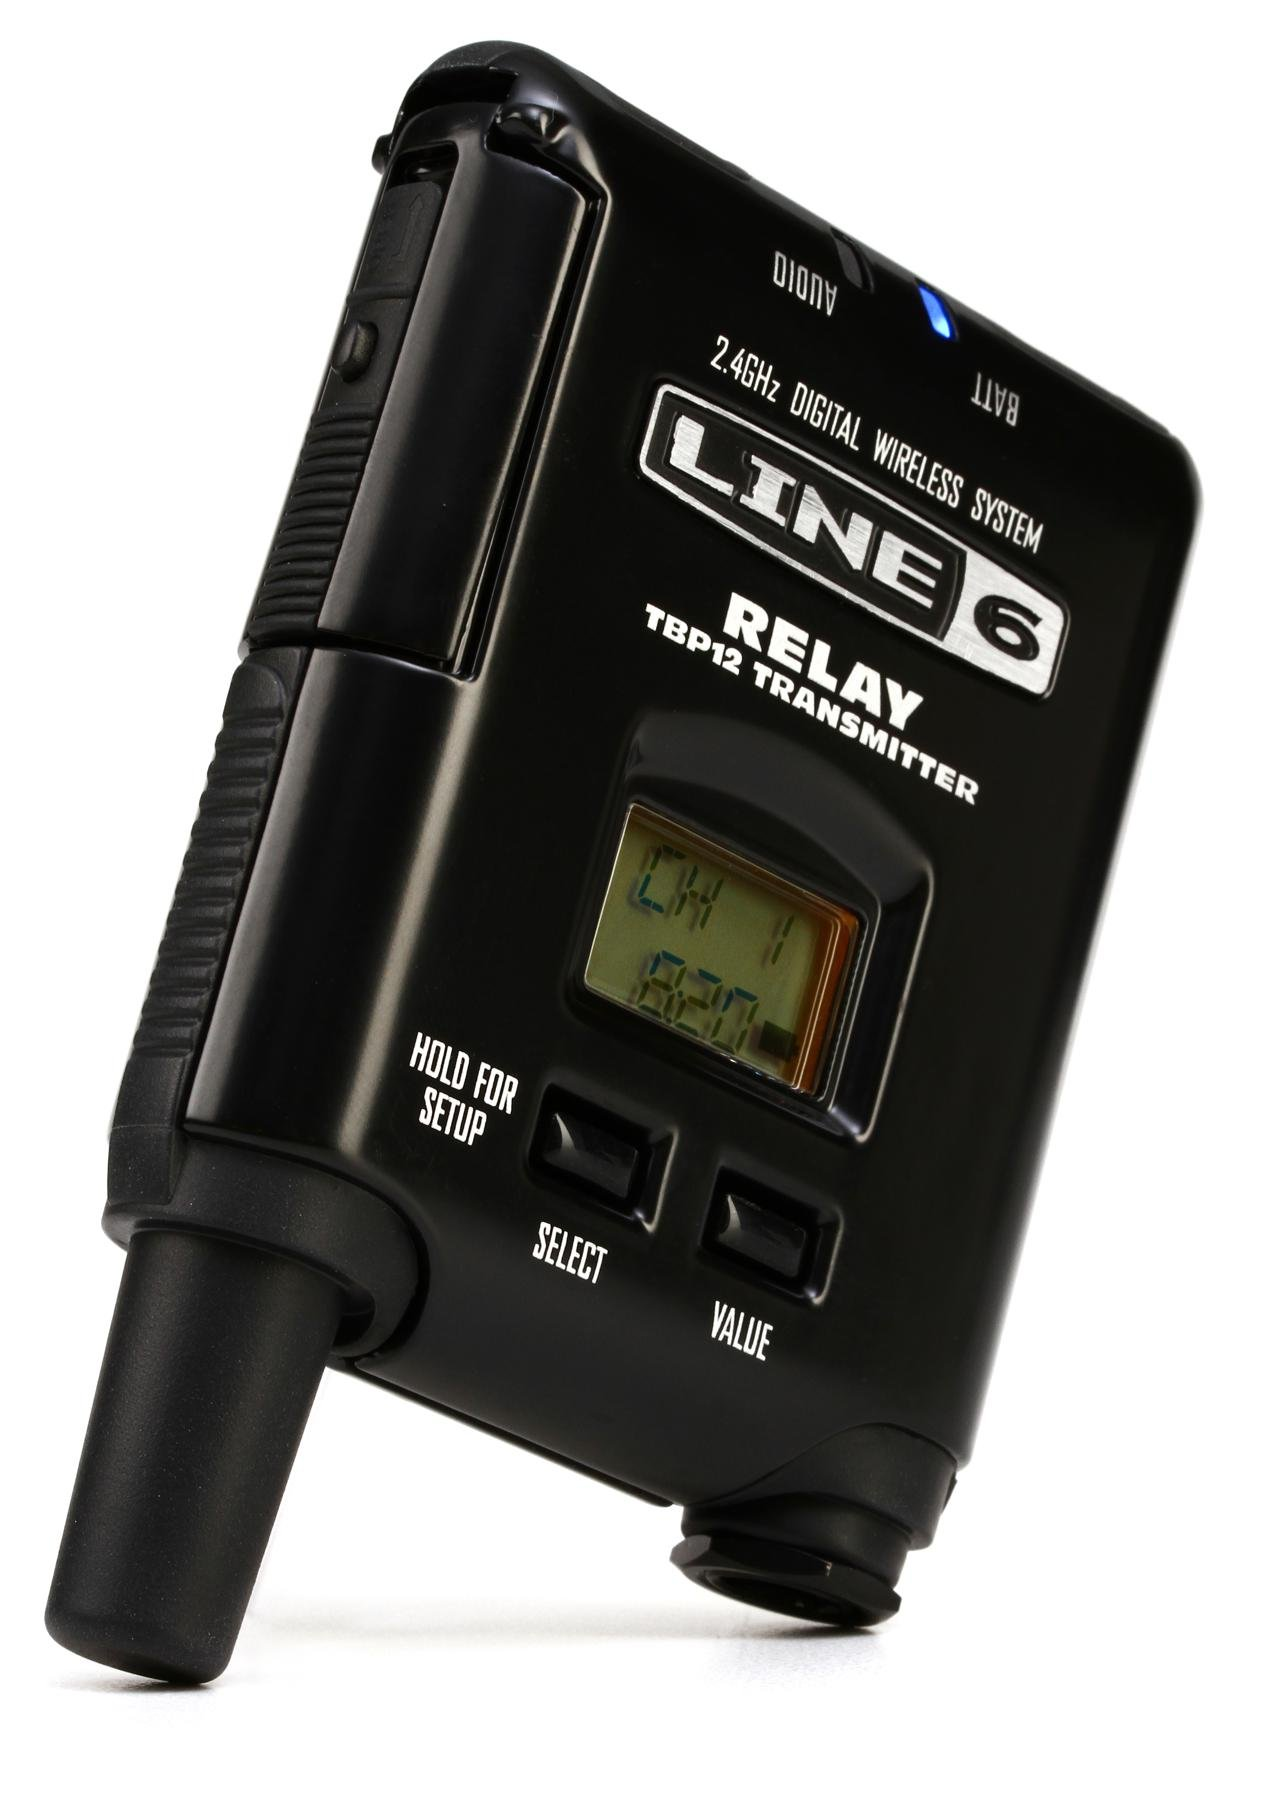 Line 6 Relay G55 Digital Wireless Guitar System Sweetwater Amp Meter For My Rig This Allows You To Use The One Panel Tbp12 Bodypack Transmitter